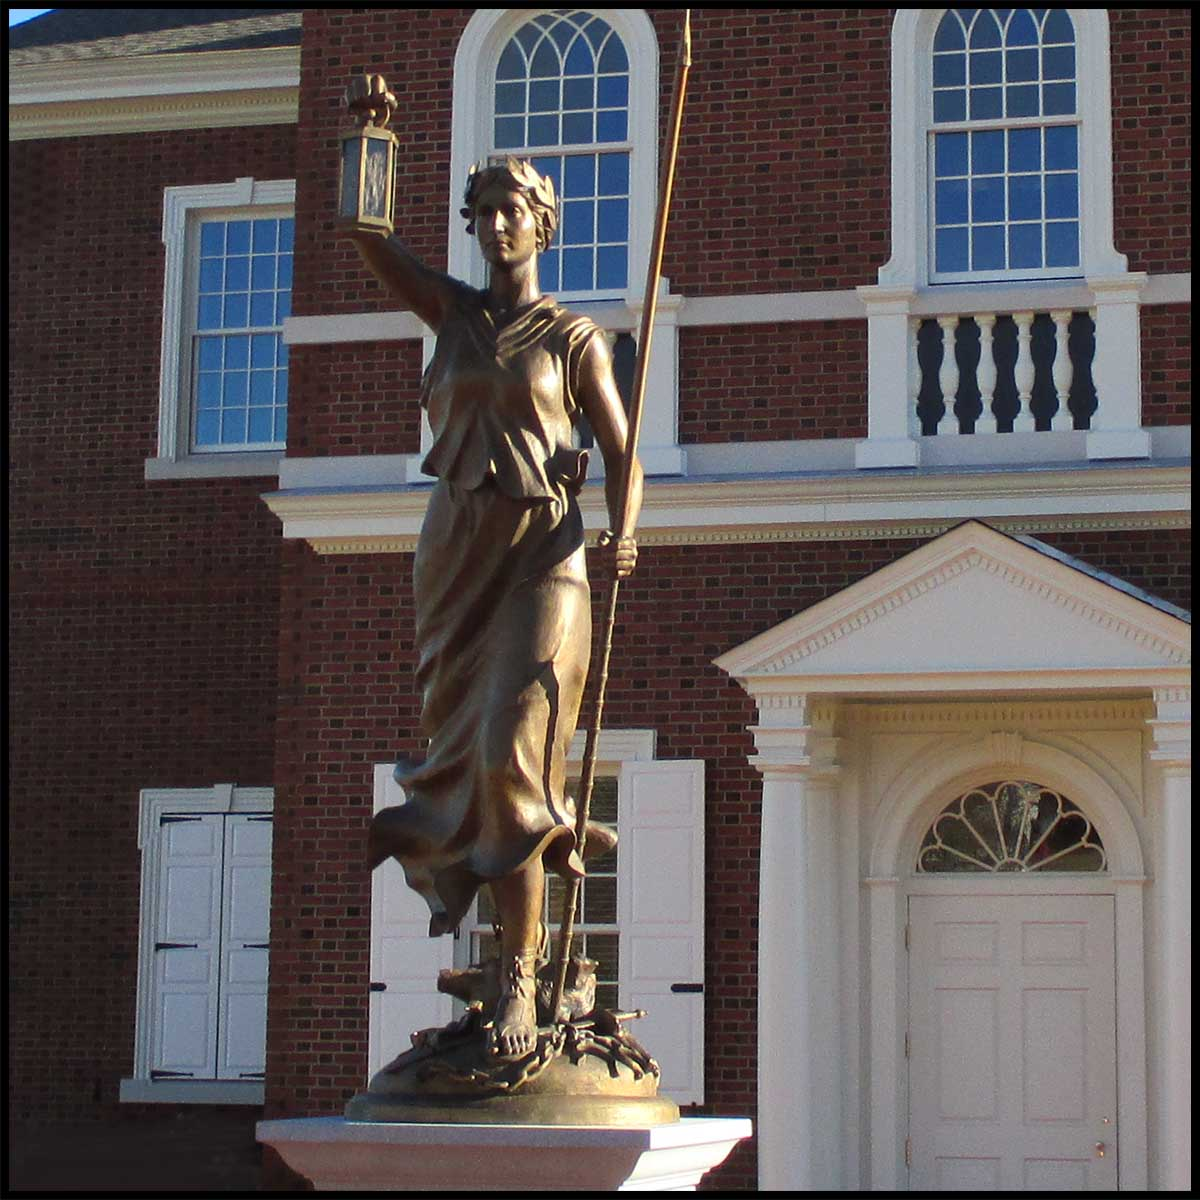 photo of bronze statue of female representing Liberty with arm raised and holding lantern in front of a brick building